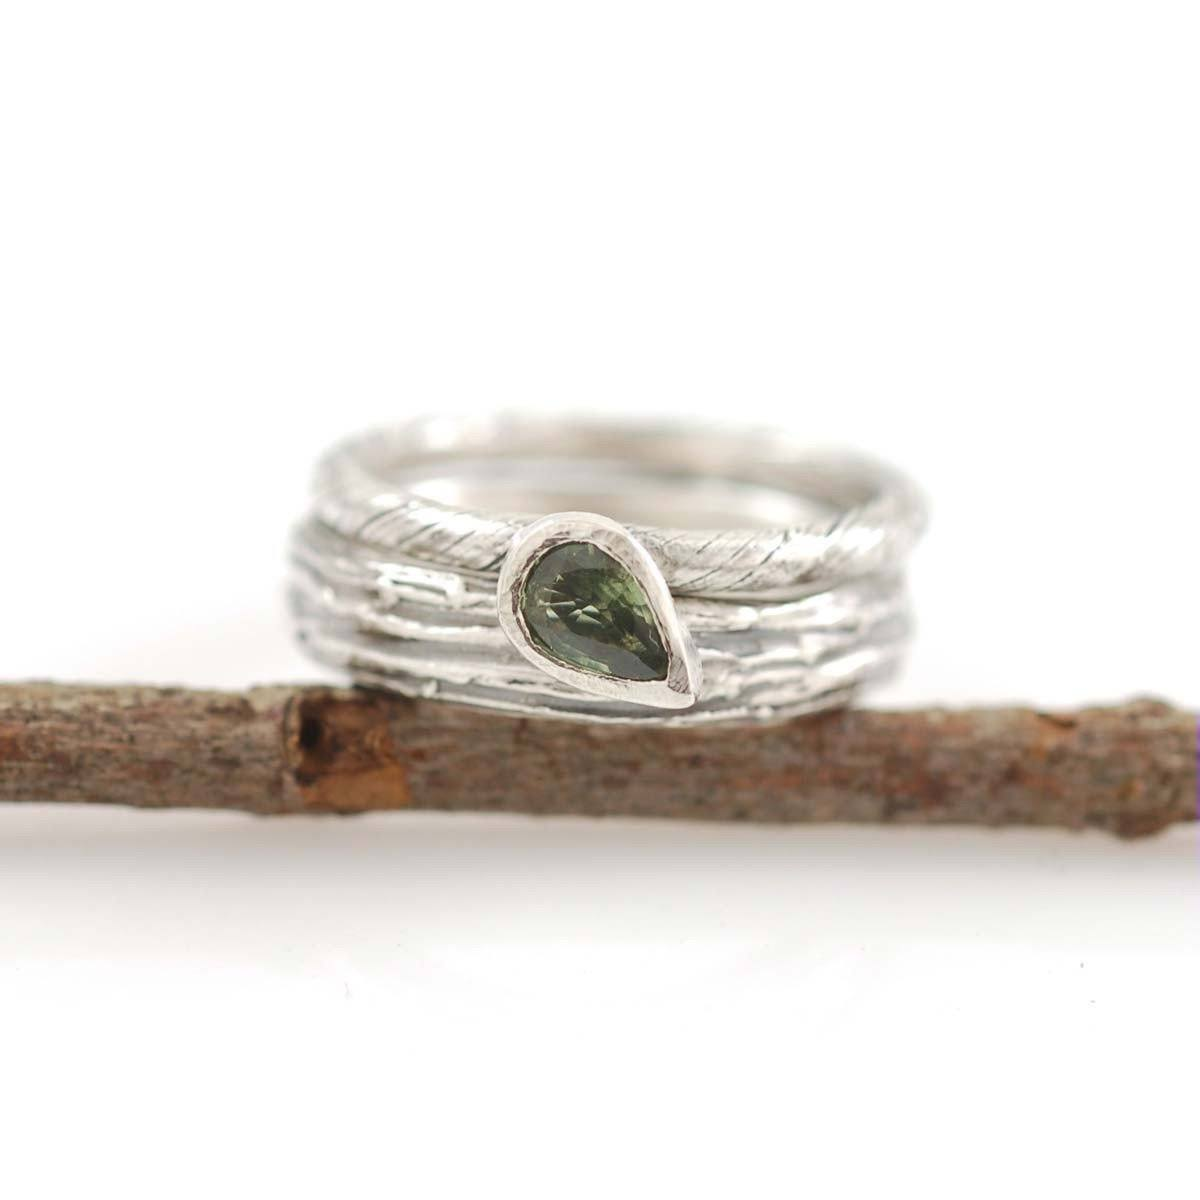 Custom Palladium Sterling Silver Vine Engagement Ring with green sapphire and Tree Bark Wedding Band - nature inspired rings by Beth Cyr